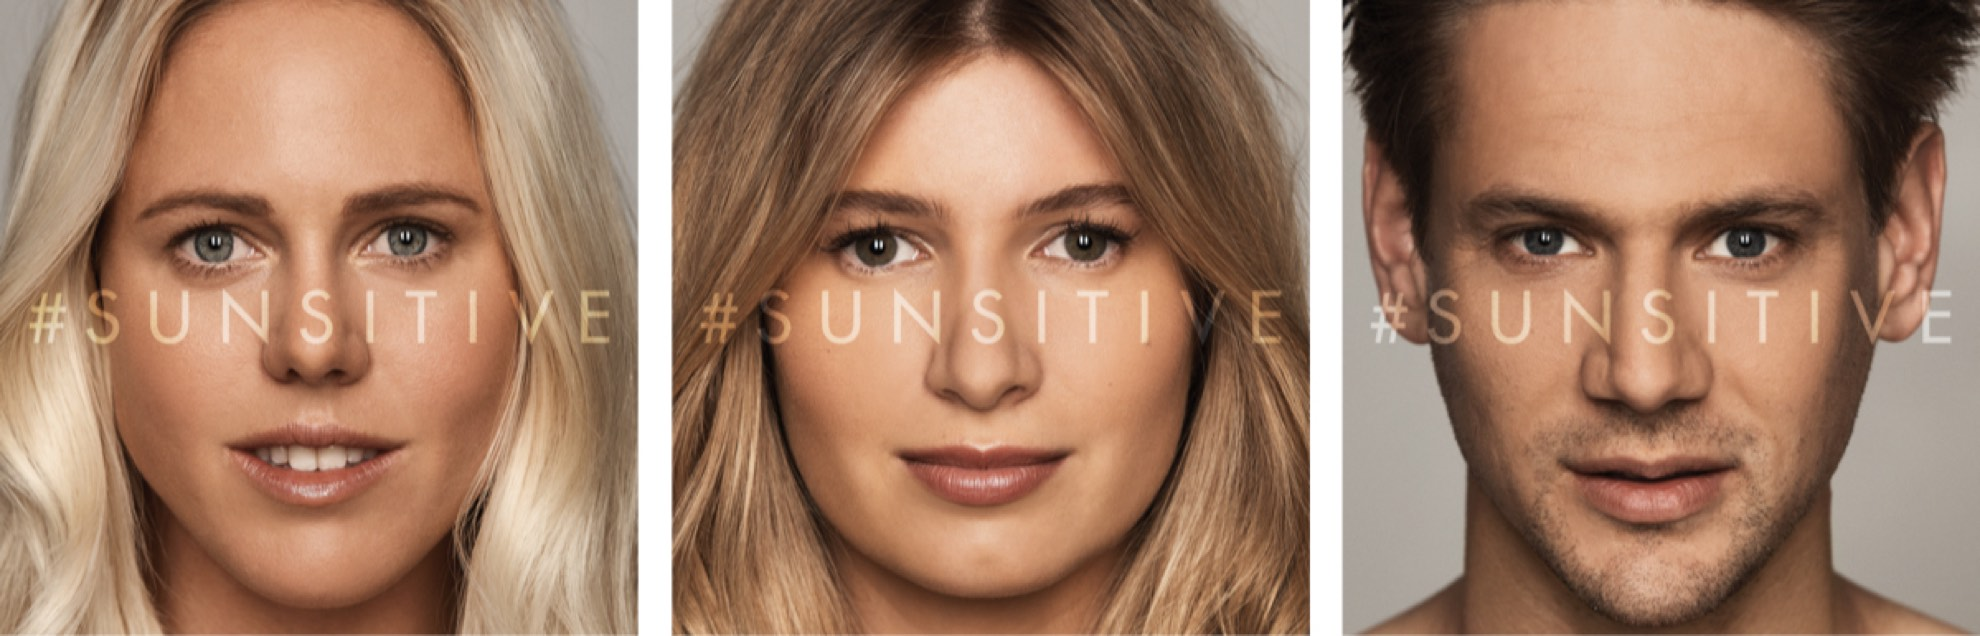 Avene Sunsitive Campaign